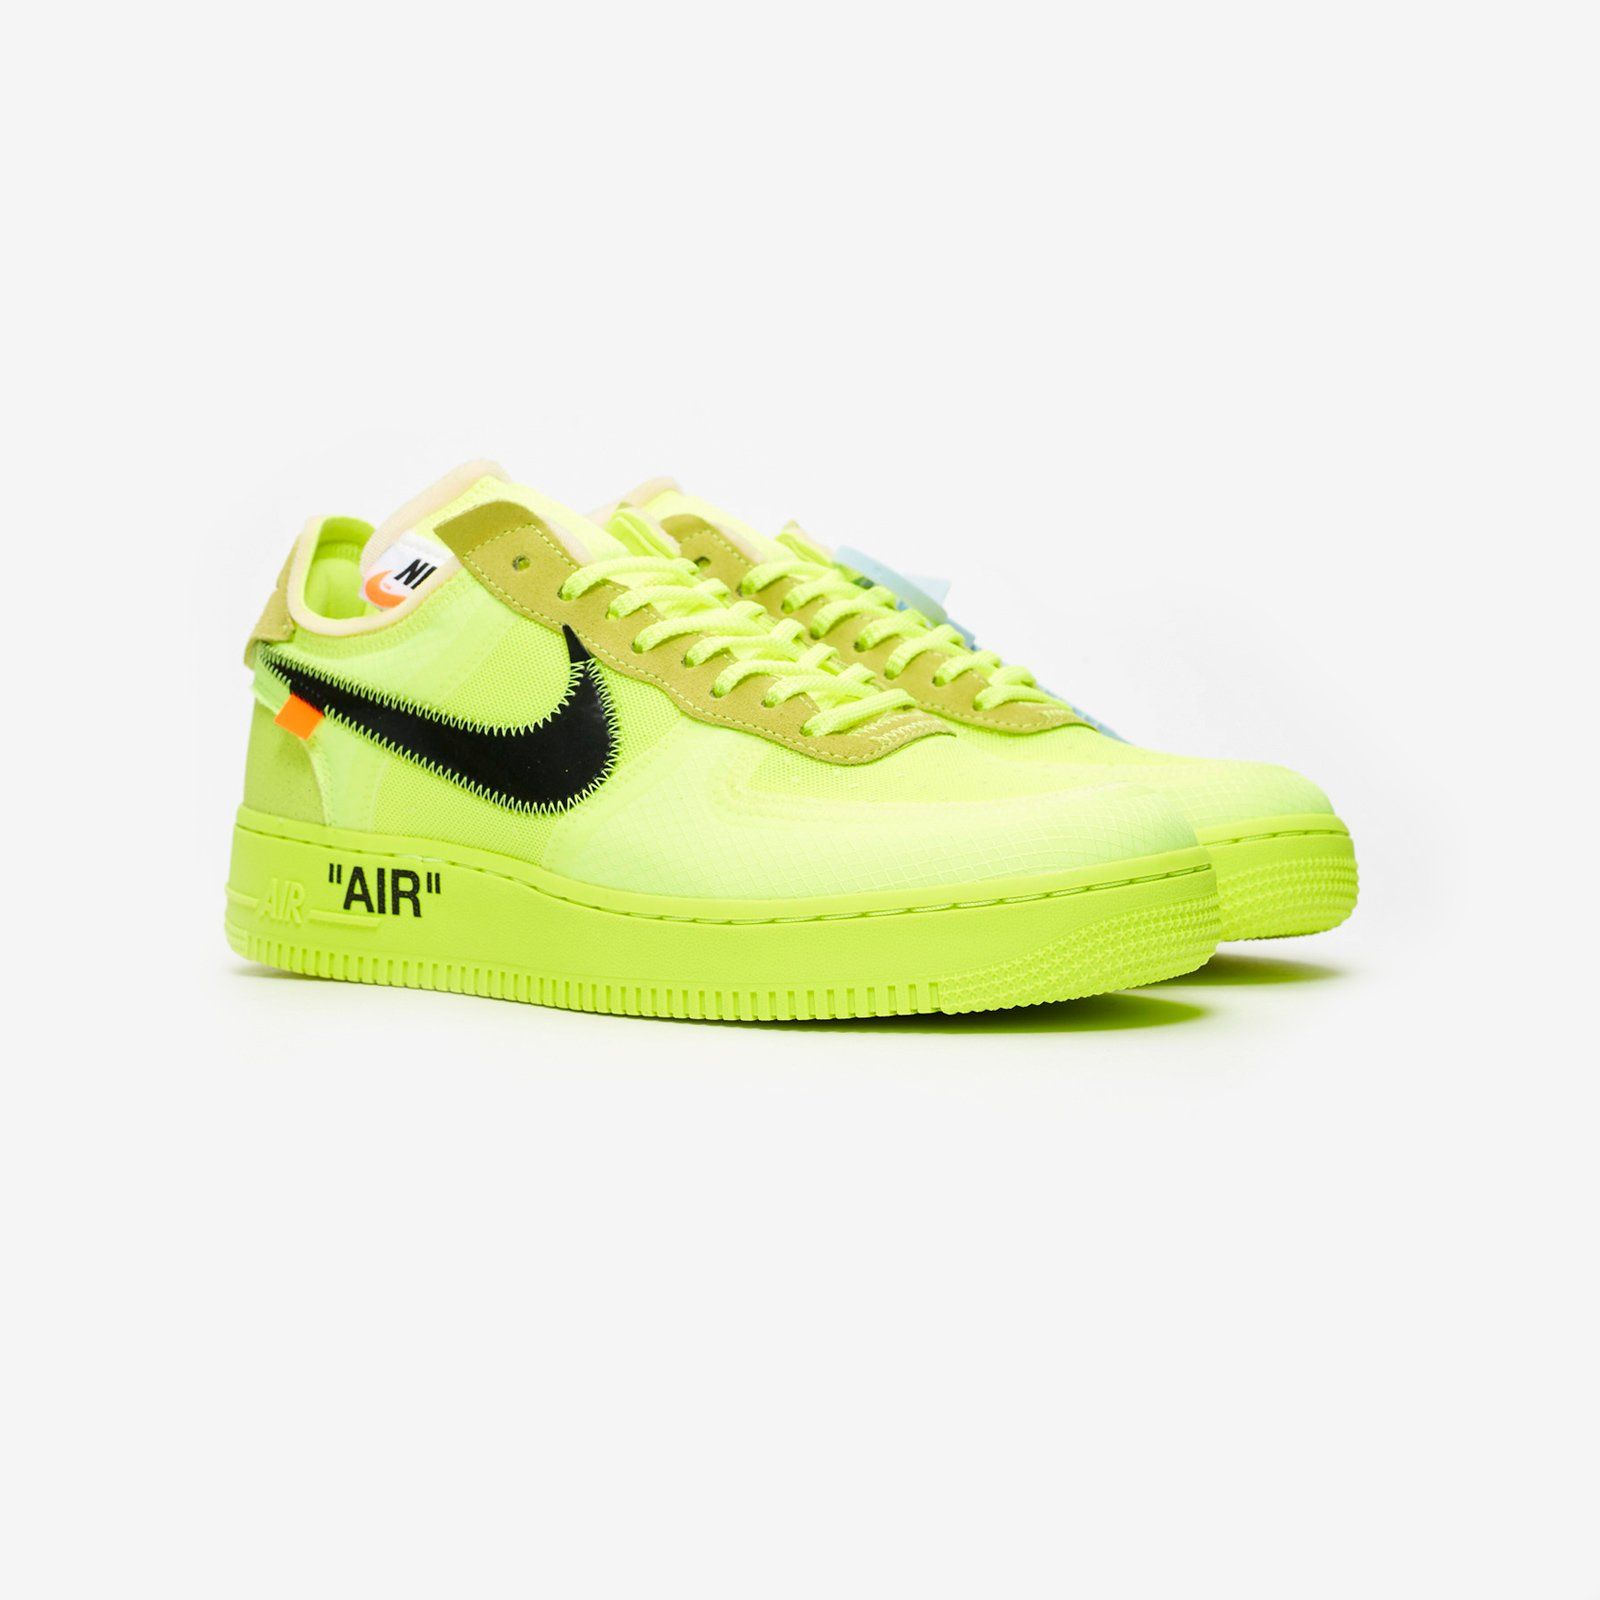 classic fit 5d785 76c23 Nike The 10: Air Force 1 Low - Ao4606-700 - Sneakersnstuff ...